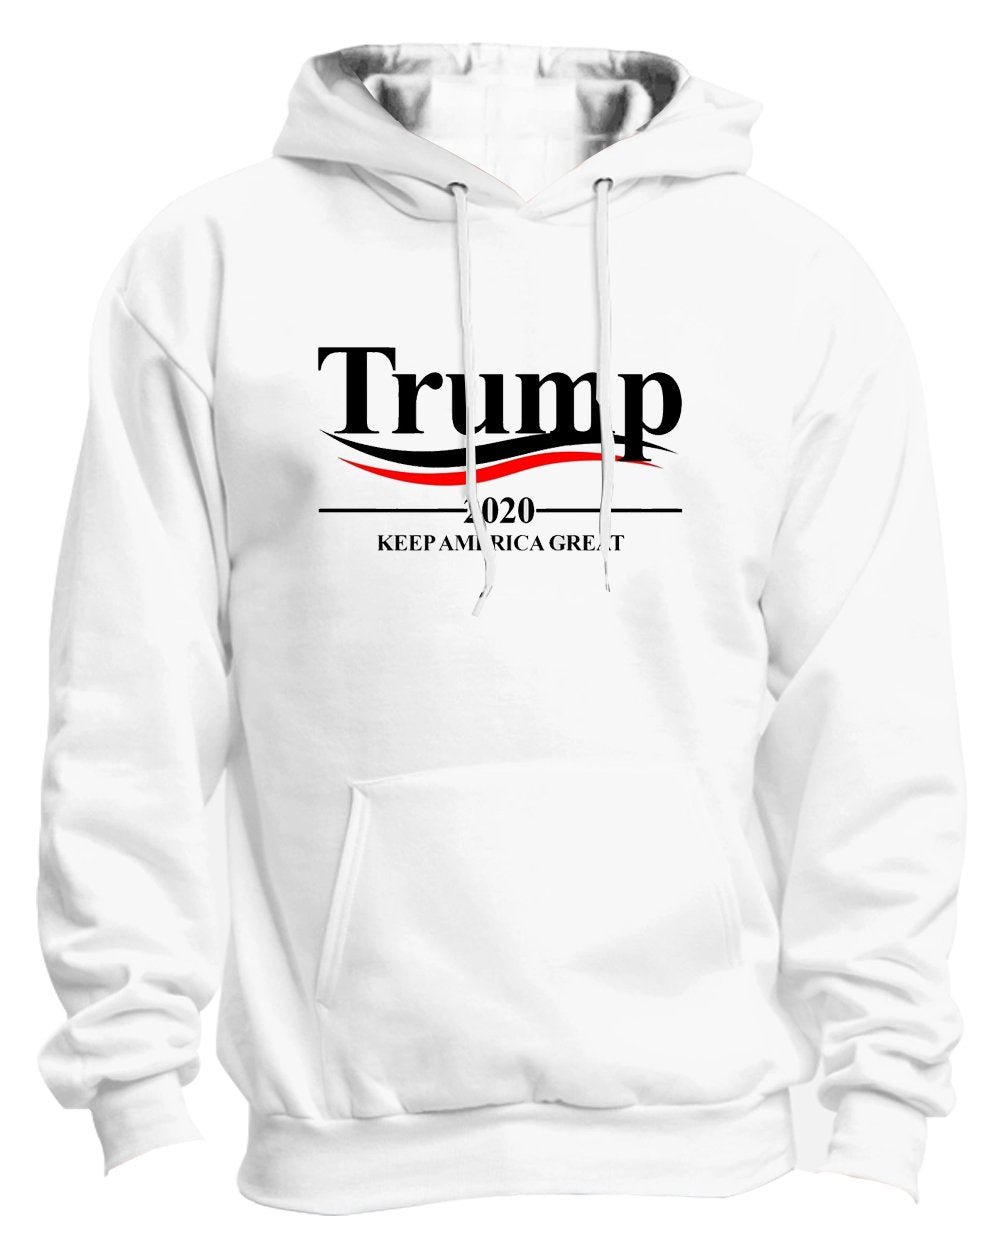 TRUMP 2020 KEEP AMERICA GREAT HOODIE